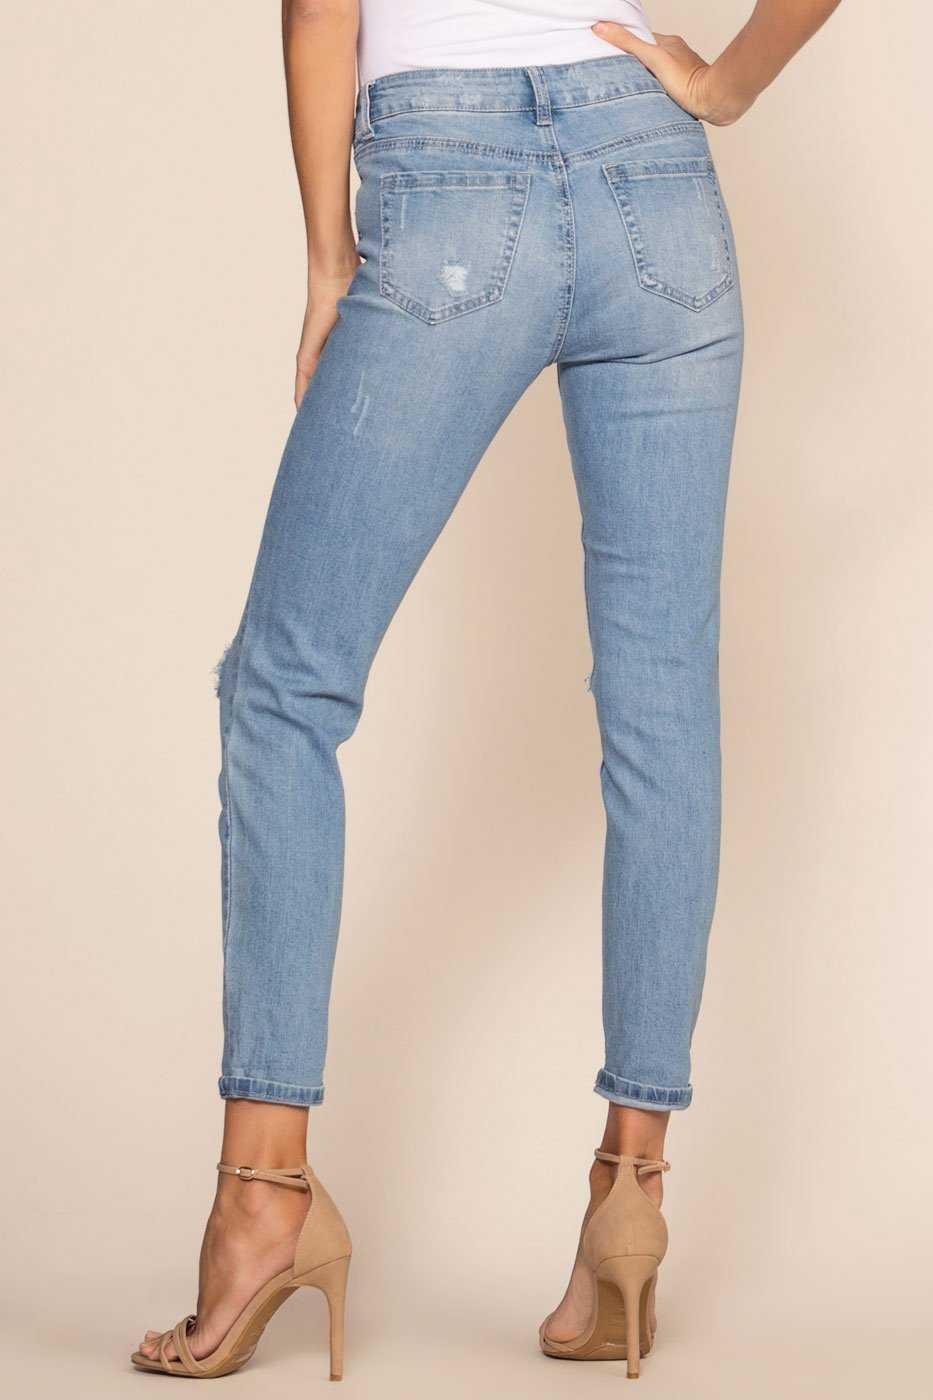 Mid-Rise Light Wash Distressed Jeans